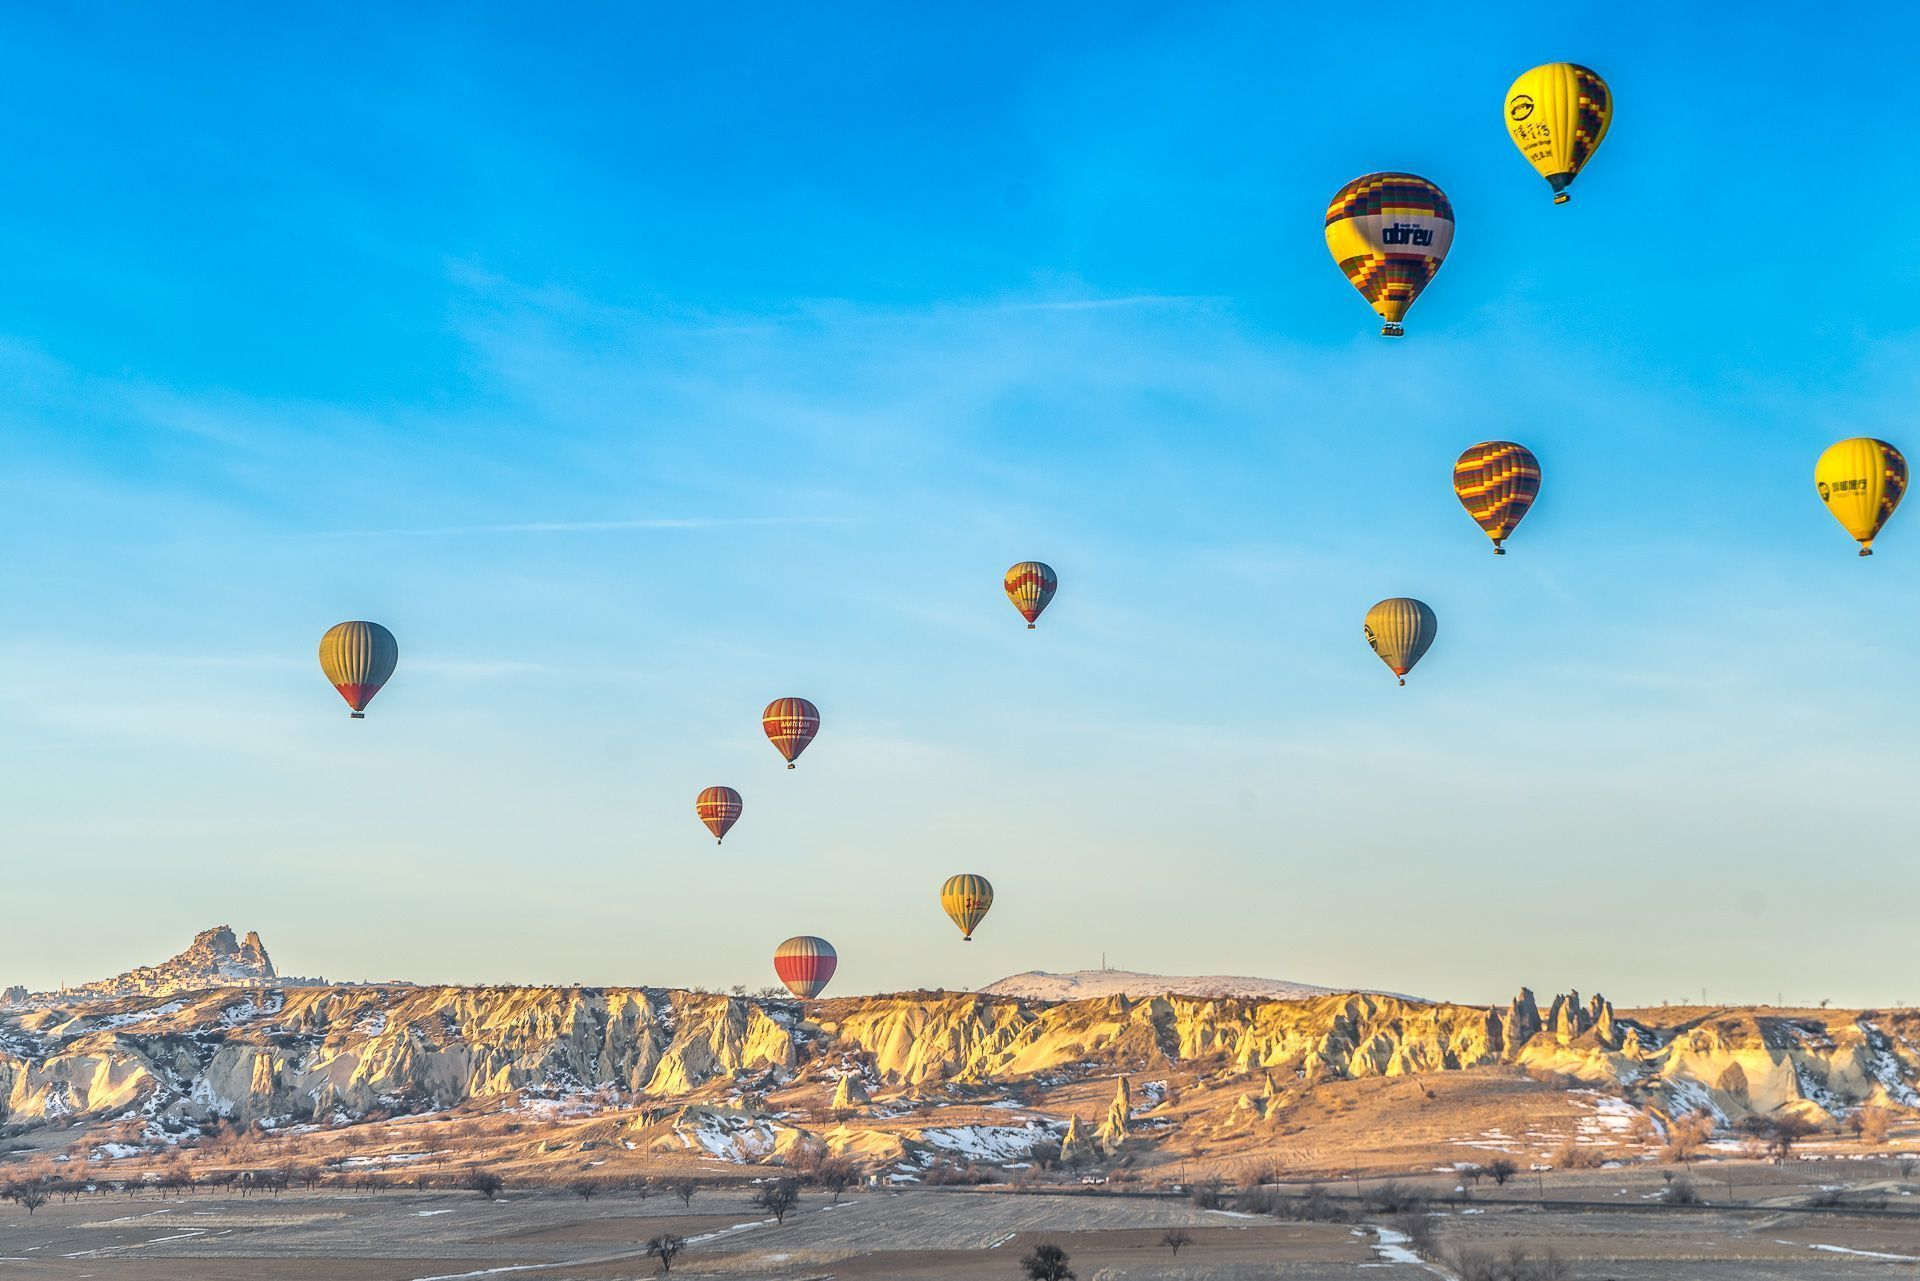 Lesvoyageuses-Turquie-Cappadoce-Montgolfiere-Nature-Aventure-11